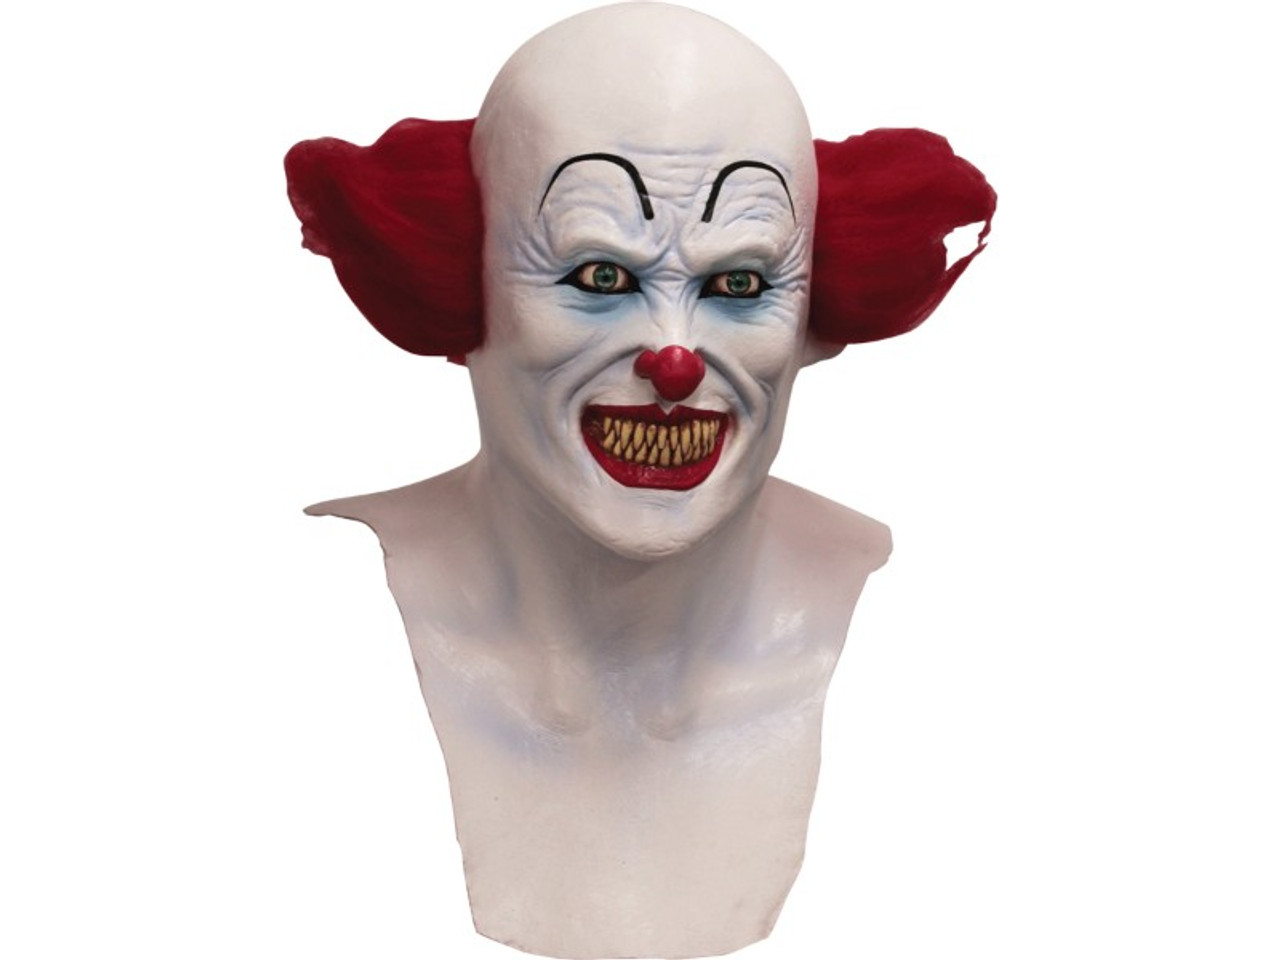 full over the head mask with chest piece features a scary clown with red